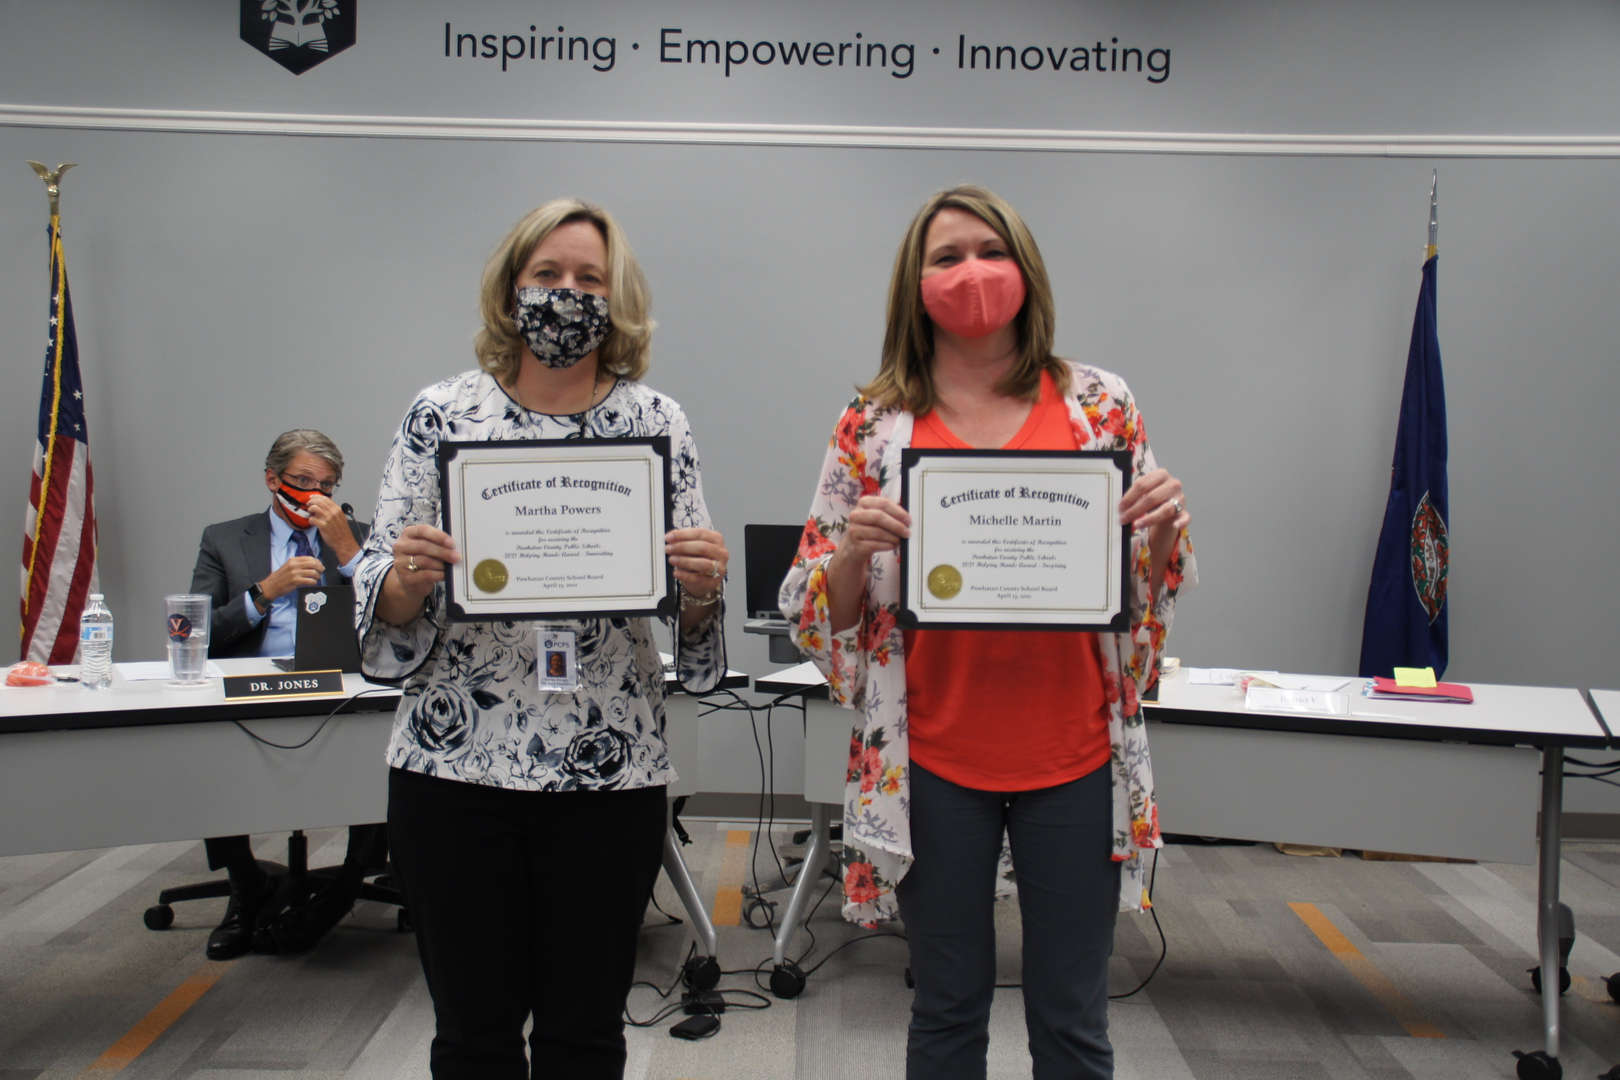 Dr. Martha Powers & Mrs. Michelle Martin receive helping hands awards